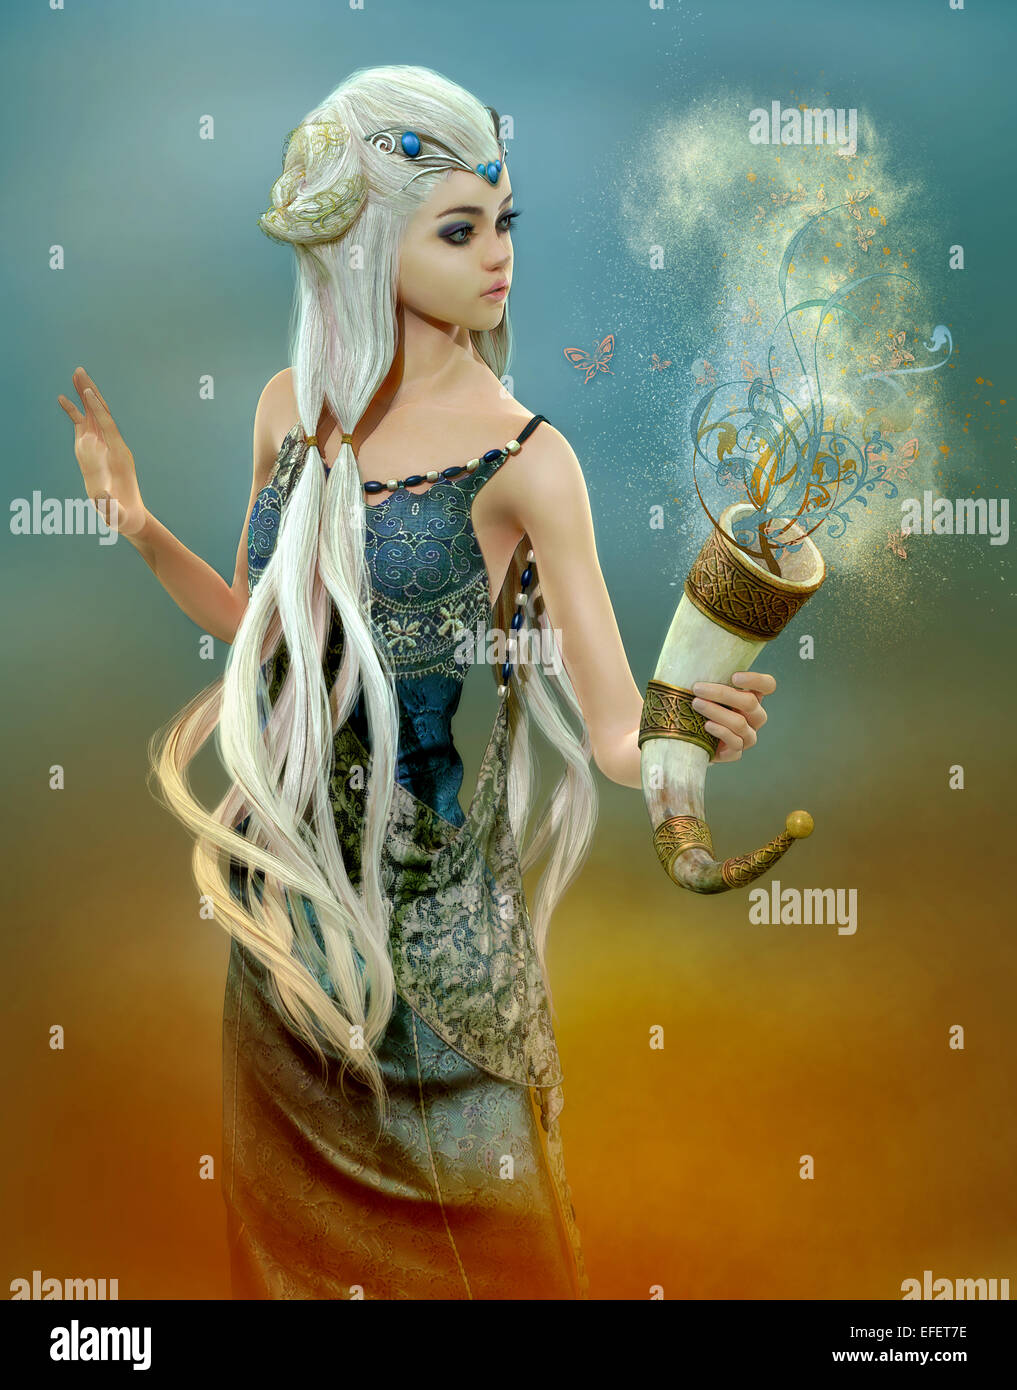 3d computer graphics of a girl with cornucopia Asian fantasy hairstyle - Stock Image